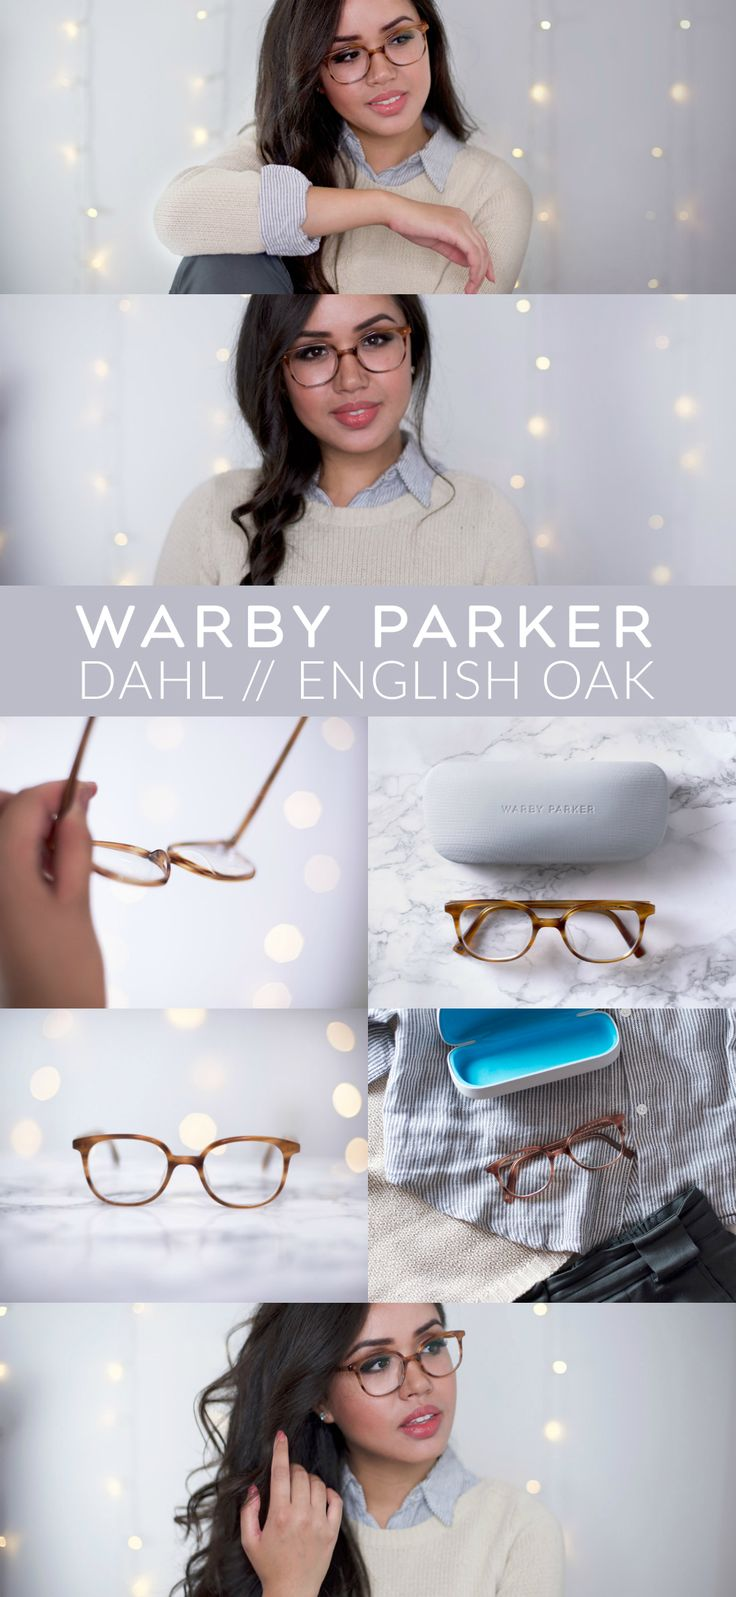 Warby Parker Dahl glasses in English Oak. Check out my review: https://brashandbrilliant.com/warby